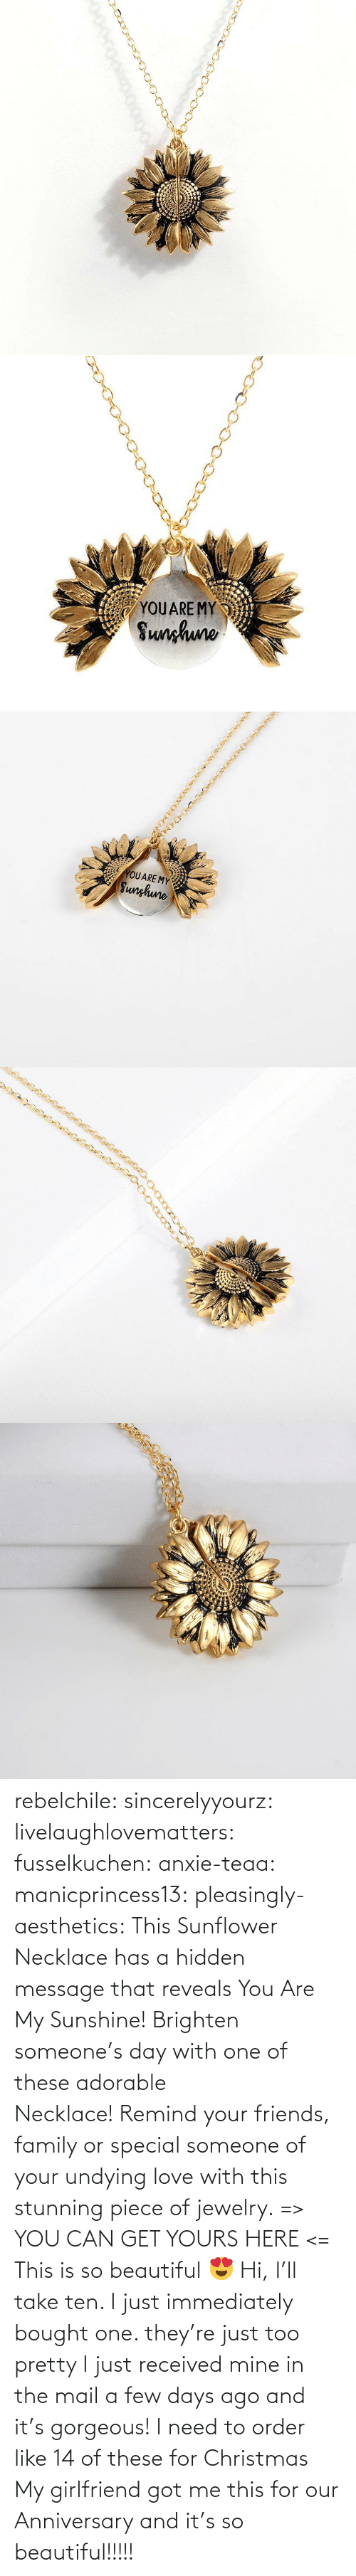 My Sunshine: YOUARE MY  Sunhuno   YOUARE MY  Sunghune rebelchile:  sincerelyyourz:  livelaughlovematters:  fusselkuchen:  anxie-teaa:   manicprincess13:   pleasingly-aesthetics:  This Sunflower Necklace has a hidden message that reveals You Are My Sunshine! Brighten someone's day with one of these adorable Necklace!Remind your friends, family or special someone of your undying love with this stunning piece of jewelry. => YOU CAN GET YOURS HERE <=   This is so beautiful 😍    Hi, I'll take ten.    I just immediately bought one. they're just too pretty   I just received mine in the mail a few days ago and it's gorgeous!   I need to order like 14 of these for Christmas    My girlfriend got me this for our Anniversary and it's so beautiful!!!!!